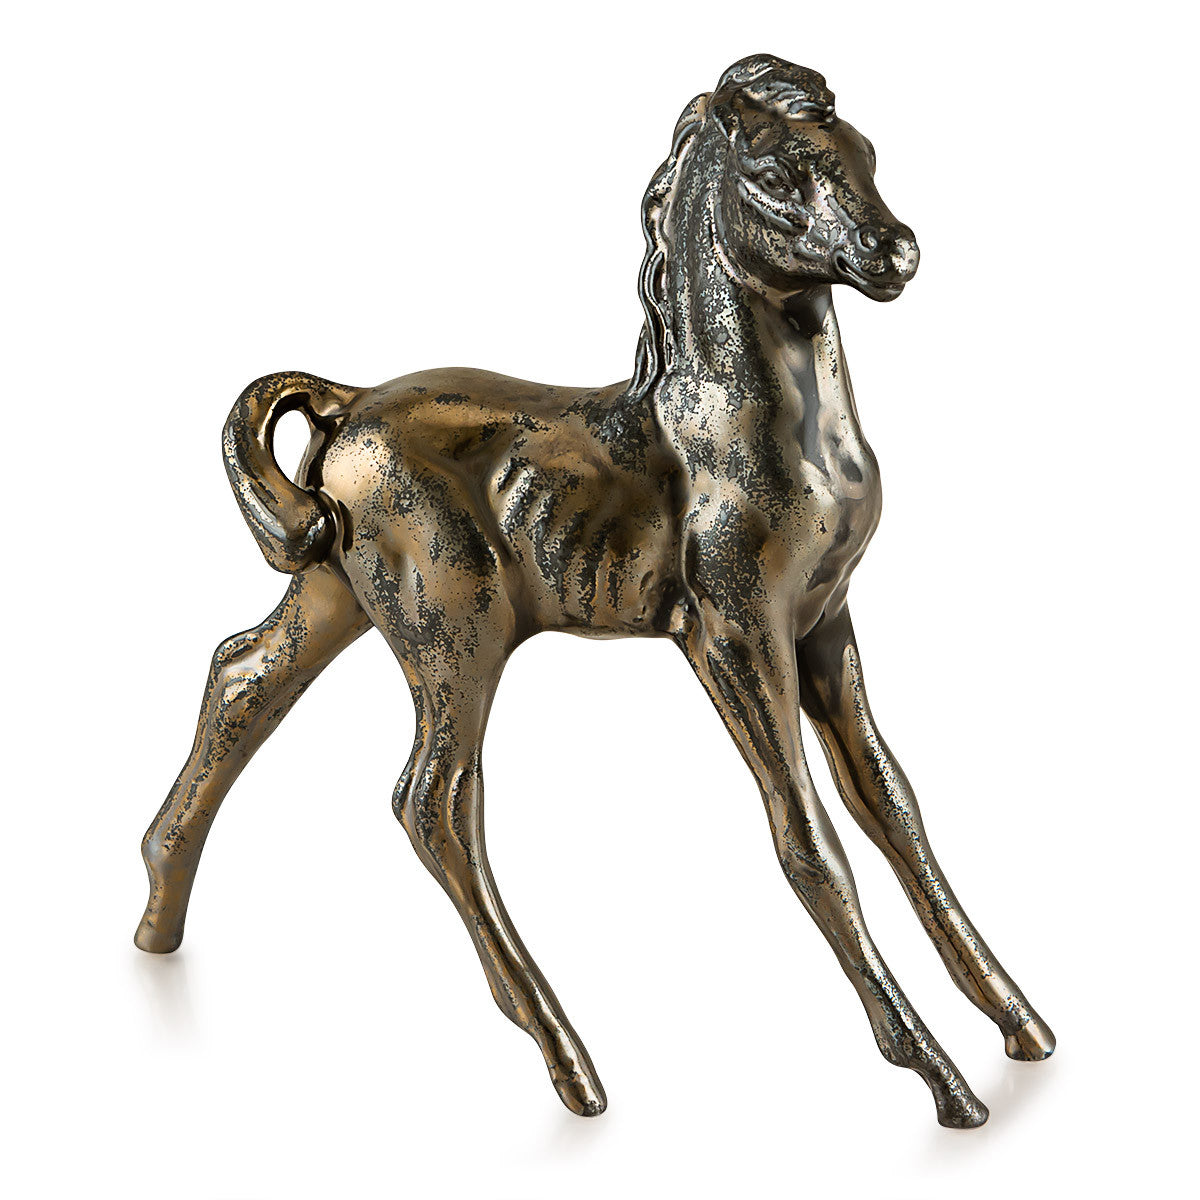 Bronze horse statue-ceramic animal figurines-animal statues-horse gifts